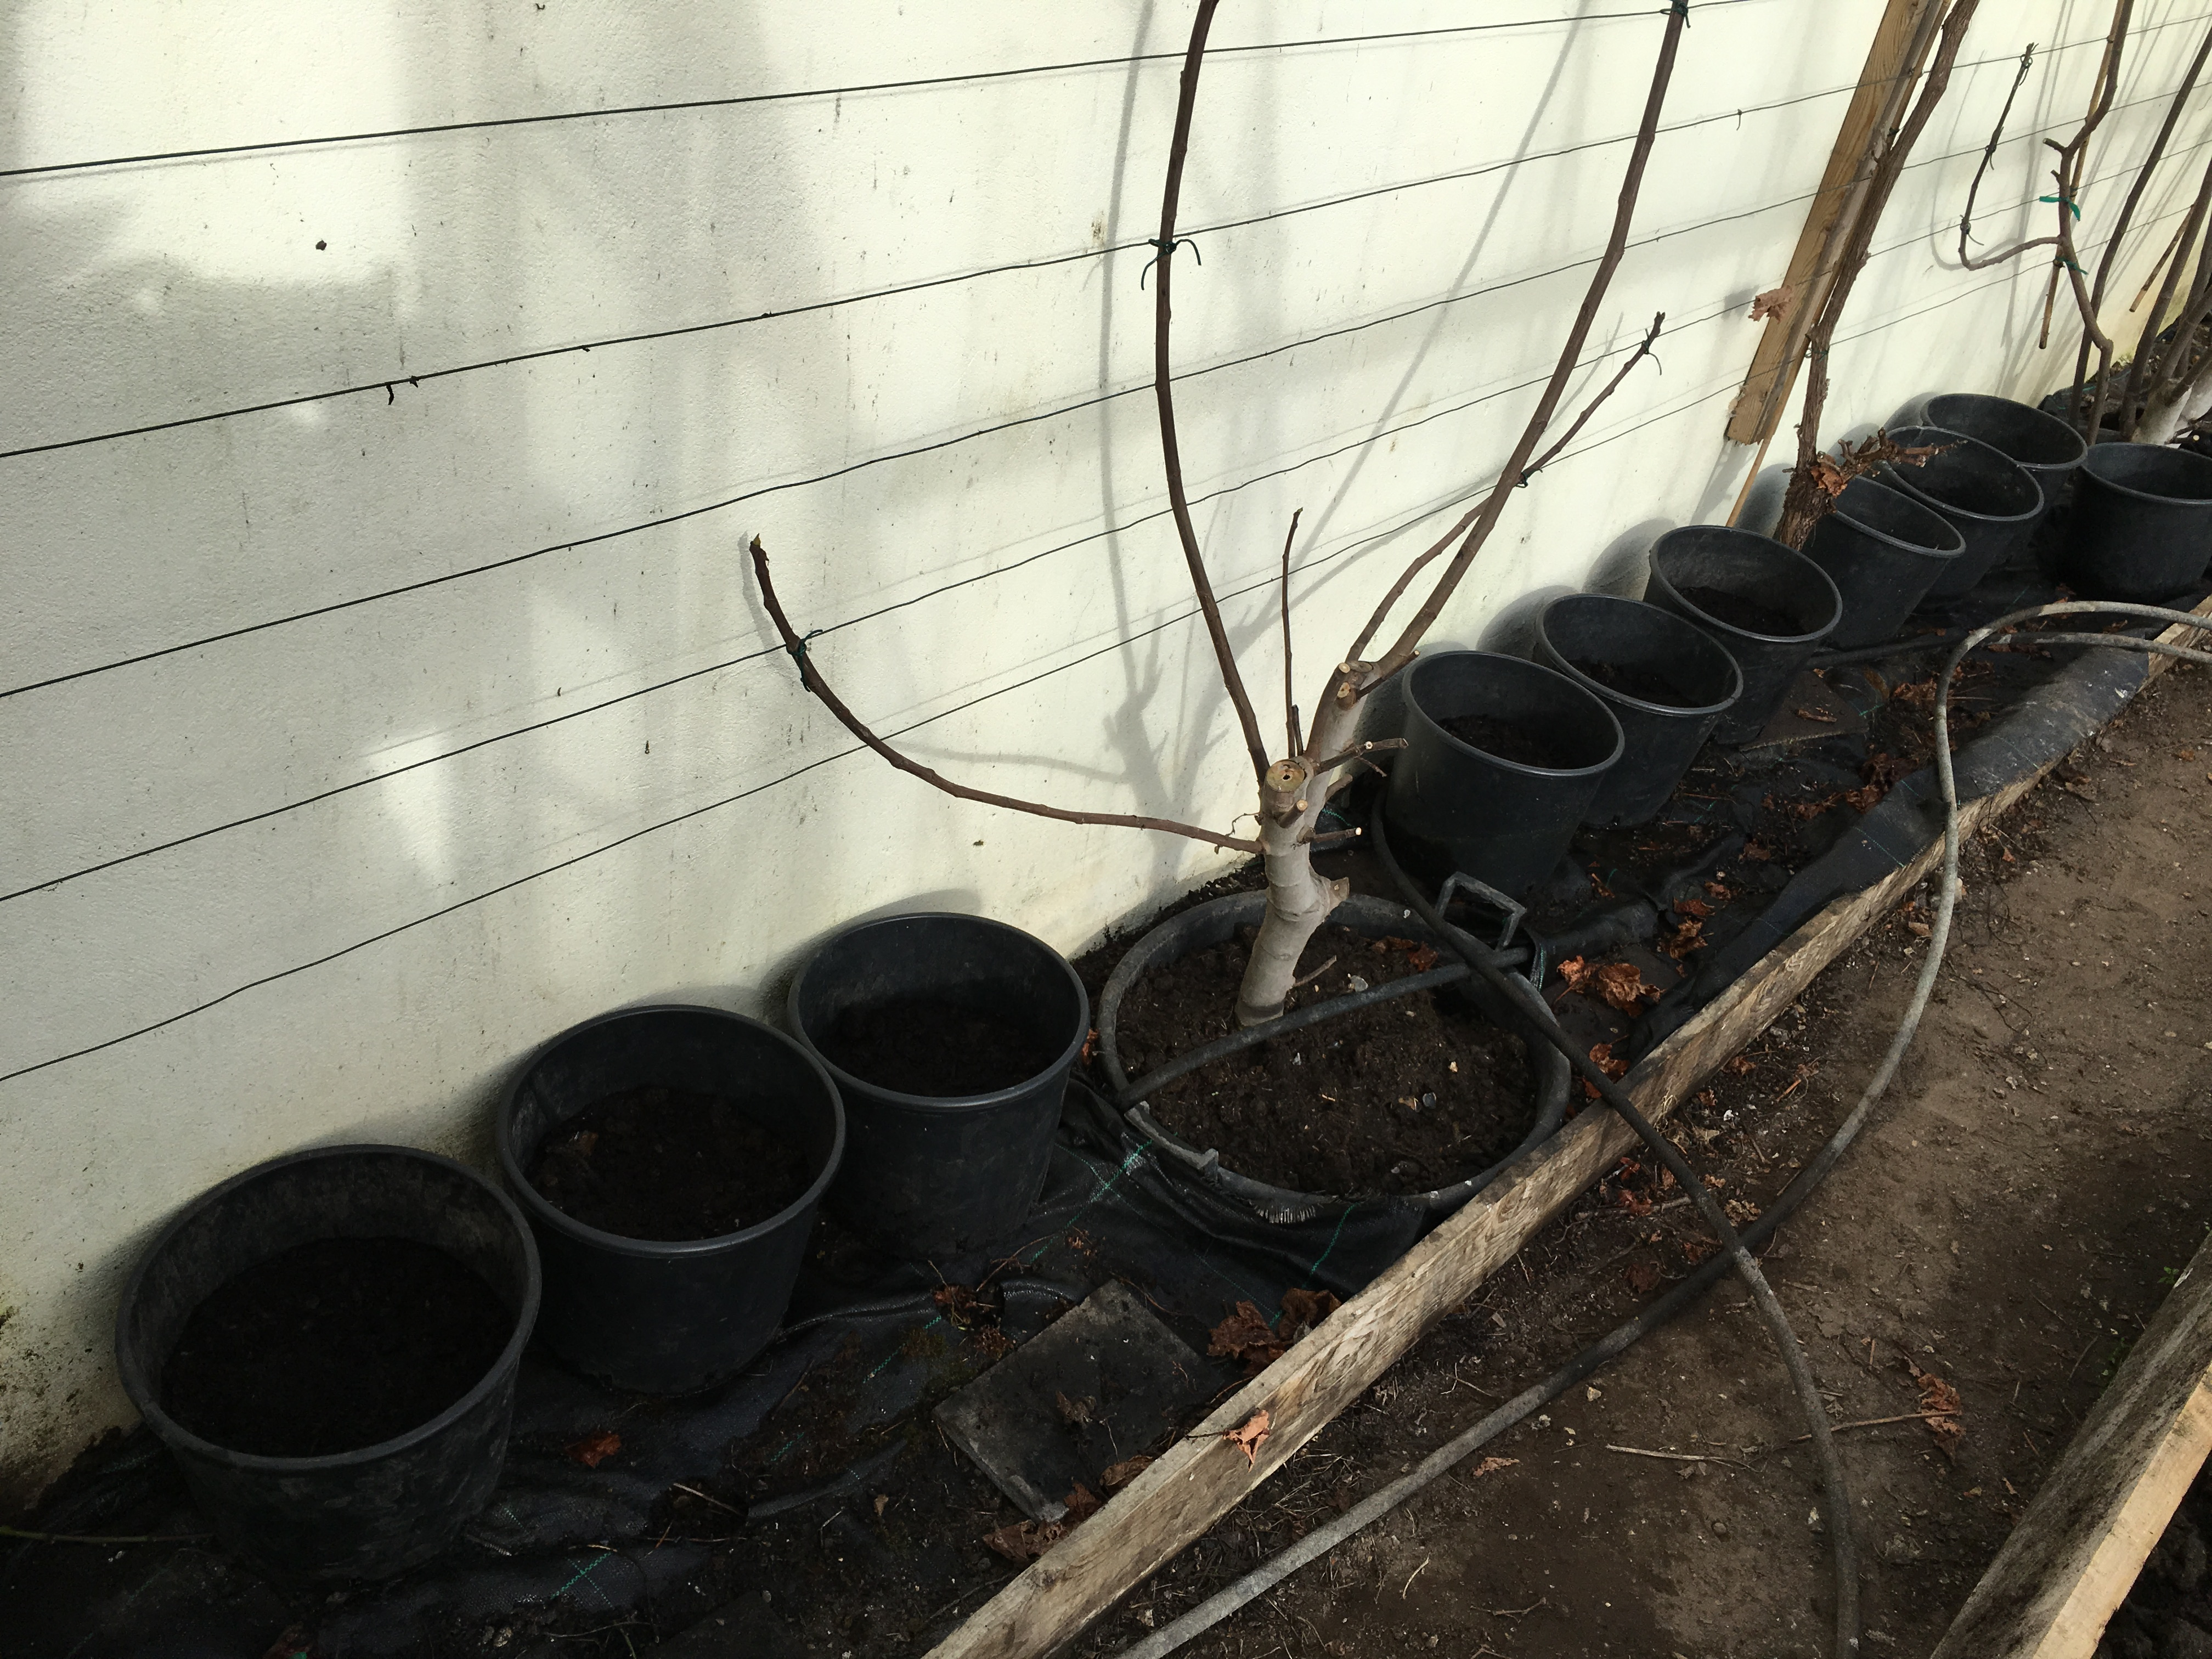 Pots lined up along the wall to take advantage of the warmth